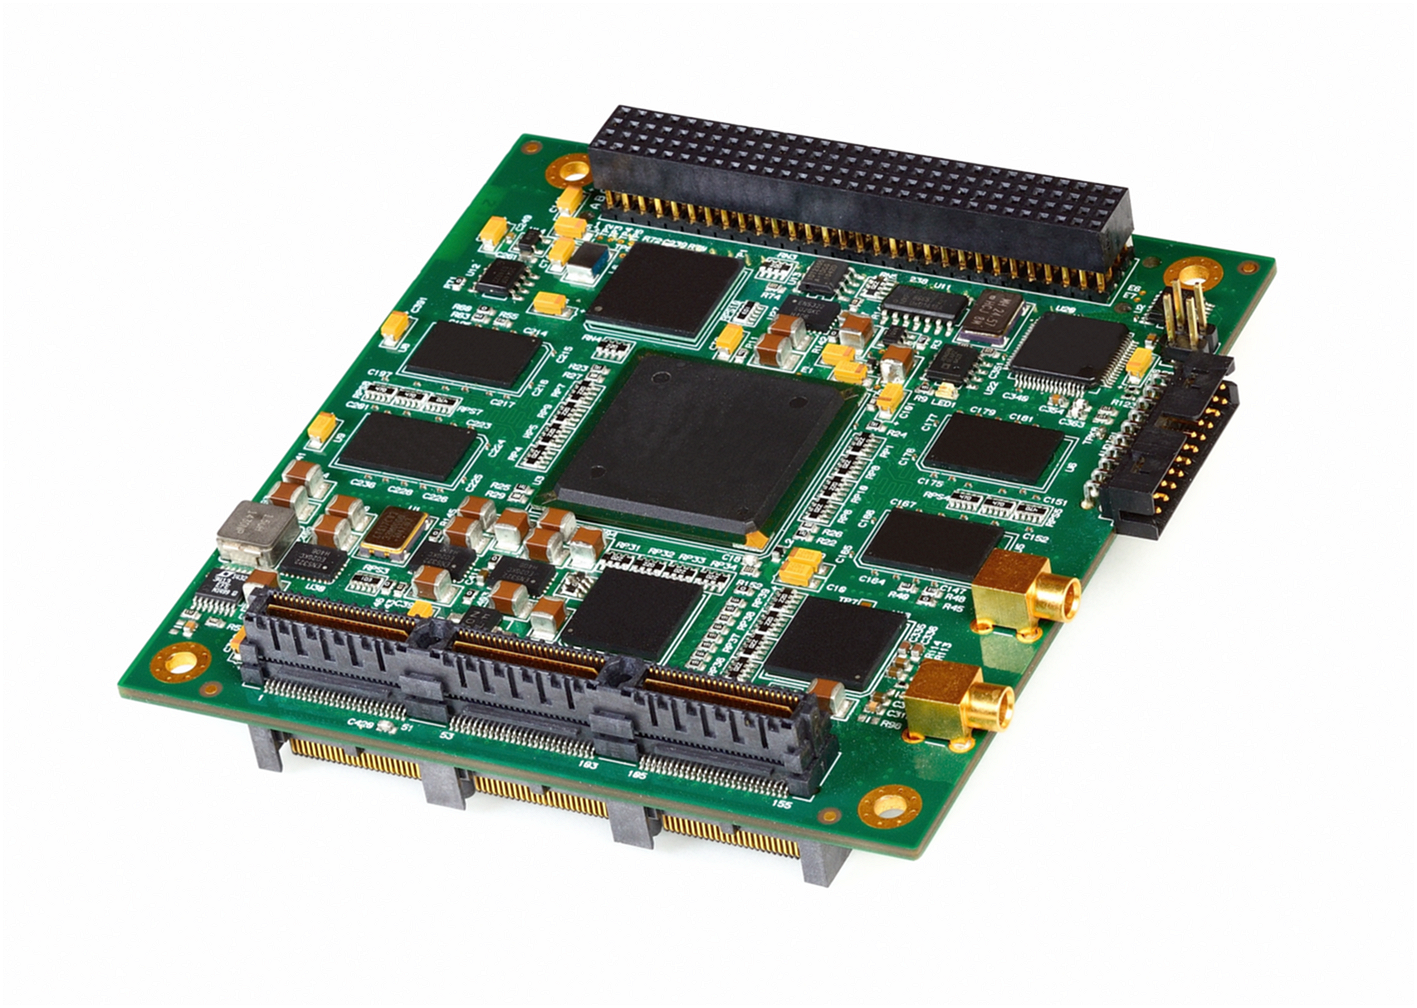 Imaging And Video Applications Get Right Sized Using Pc 104 Ntsc Pal Camera Development Board